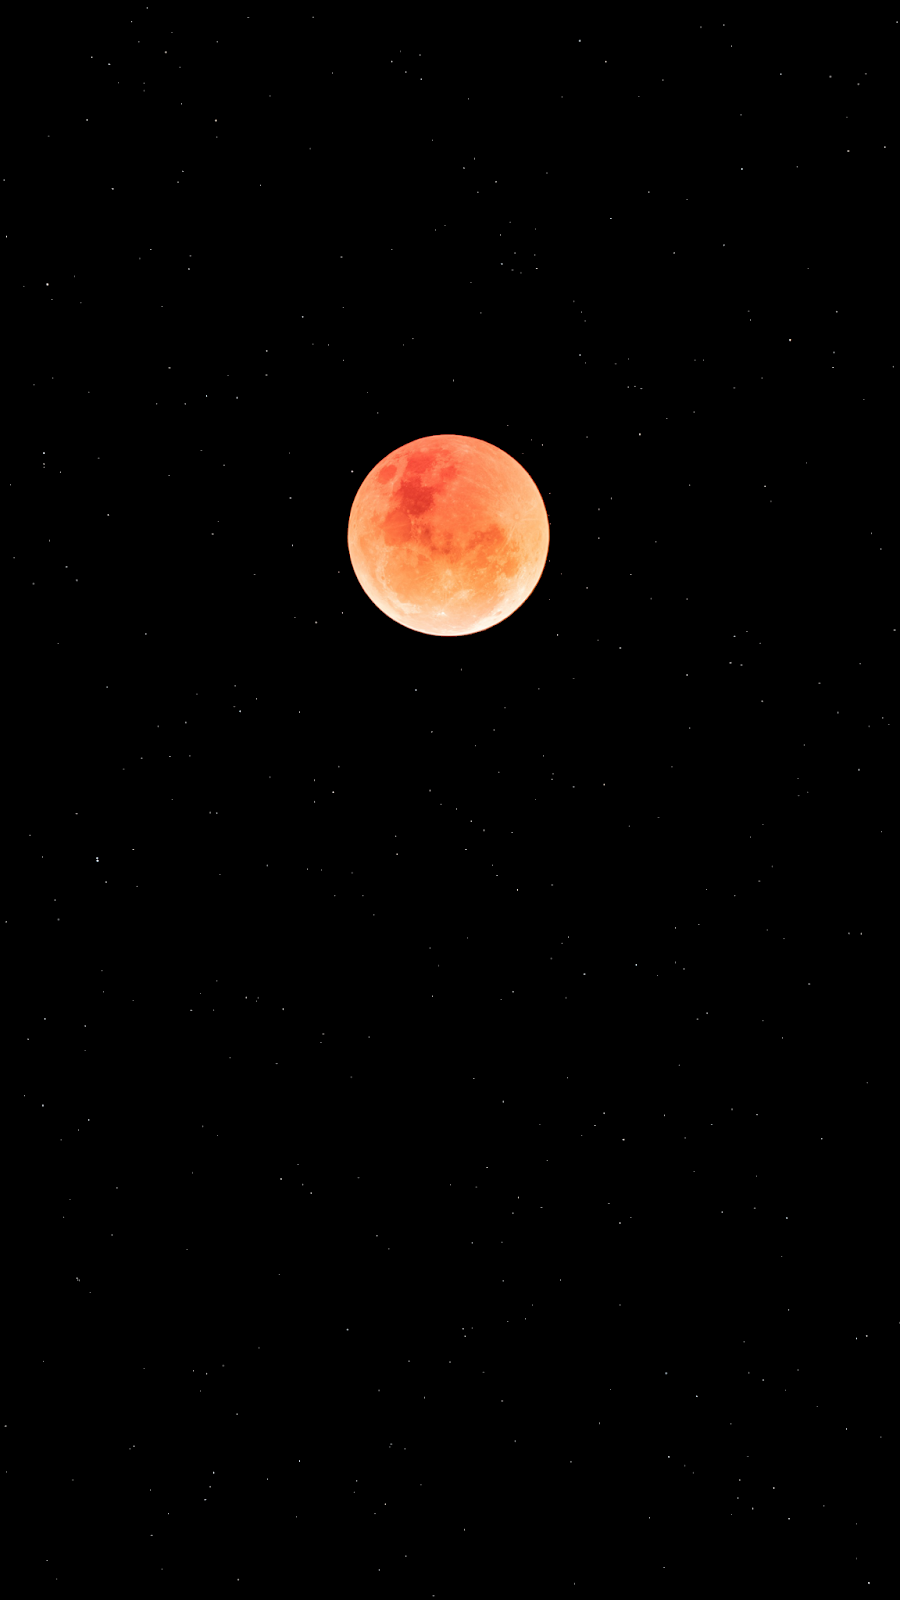 Red Moon Oledified Android Wallpaper Space Red Moon Iphone